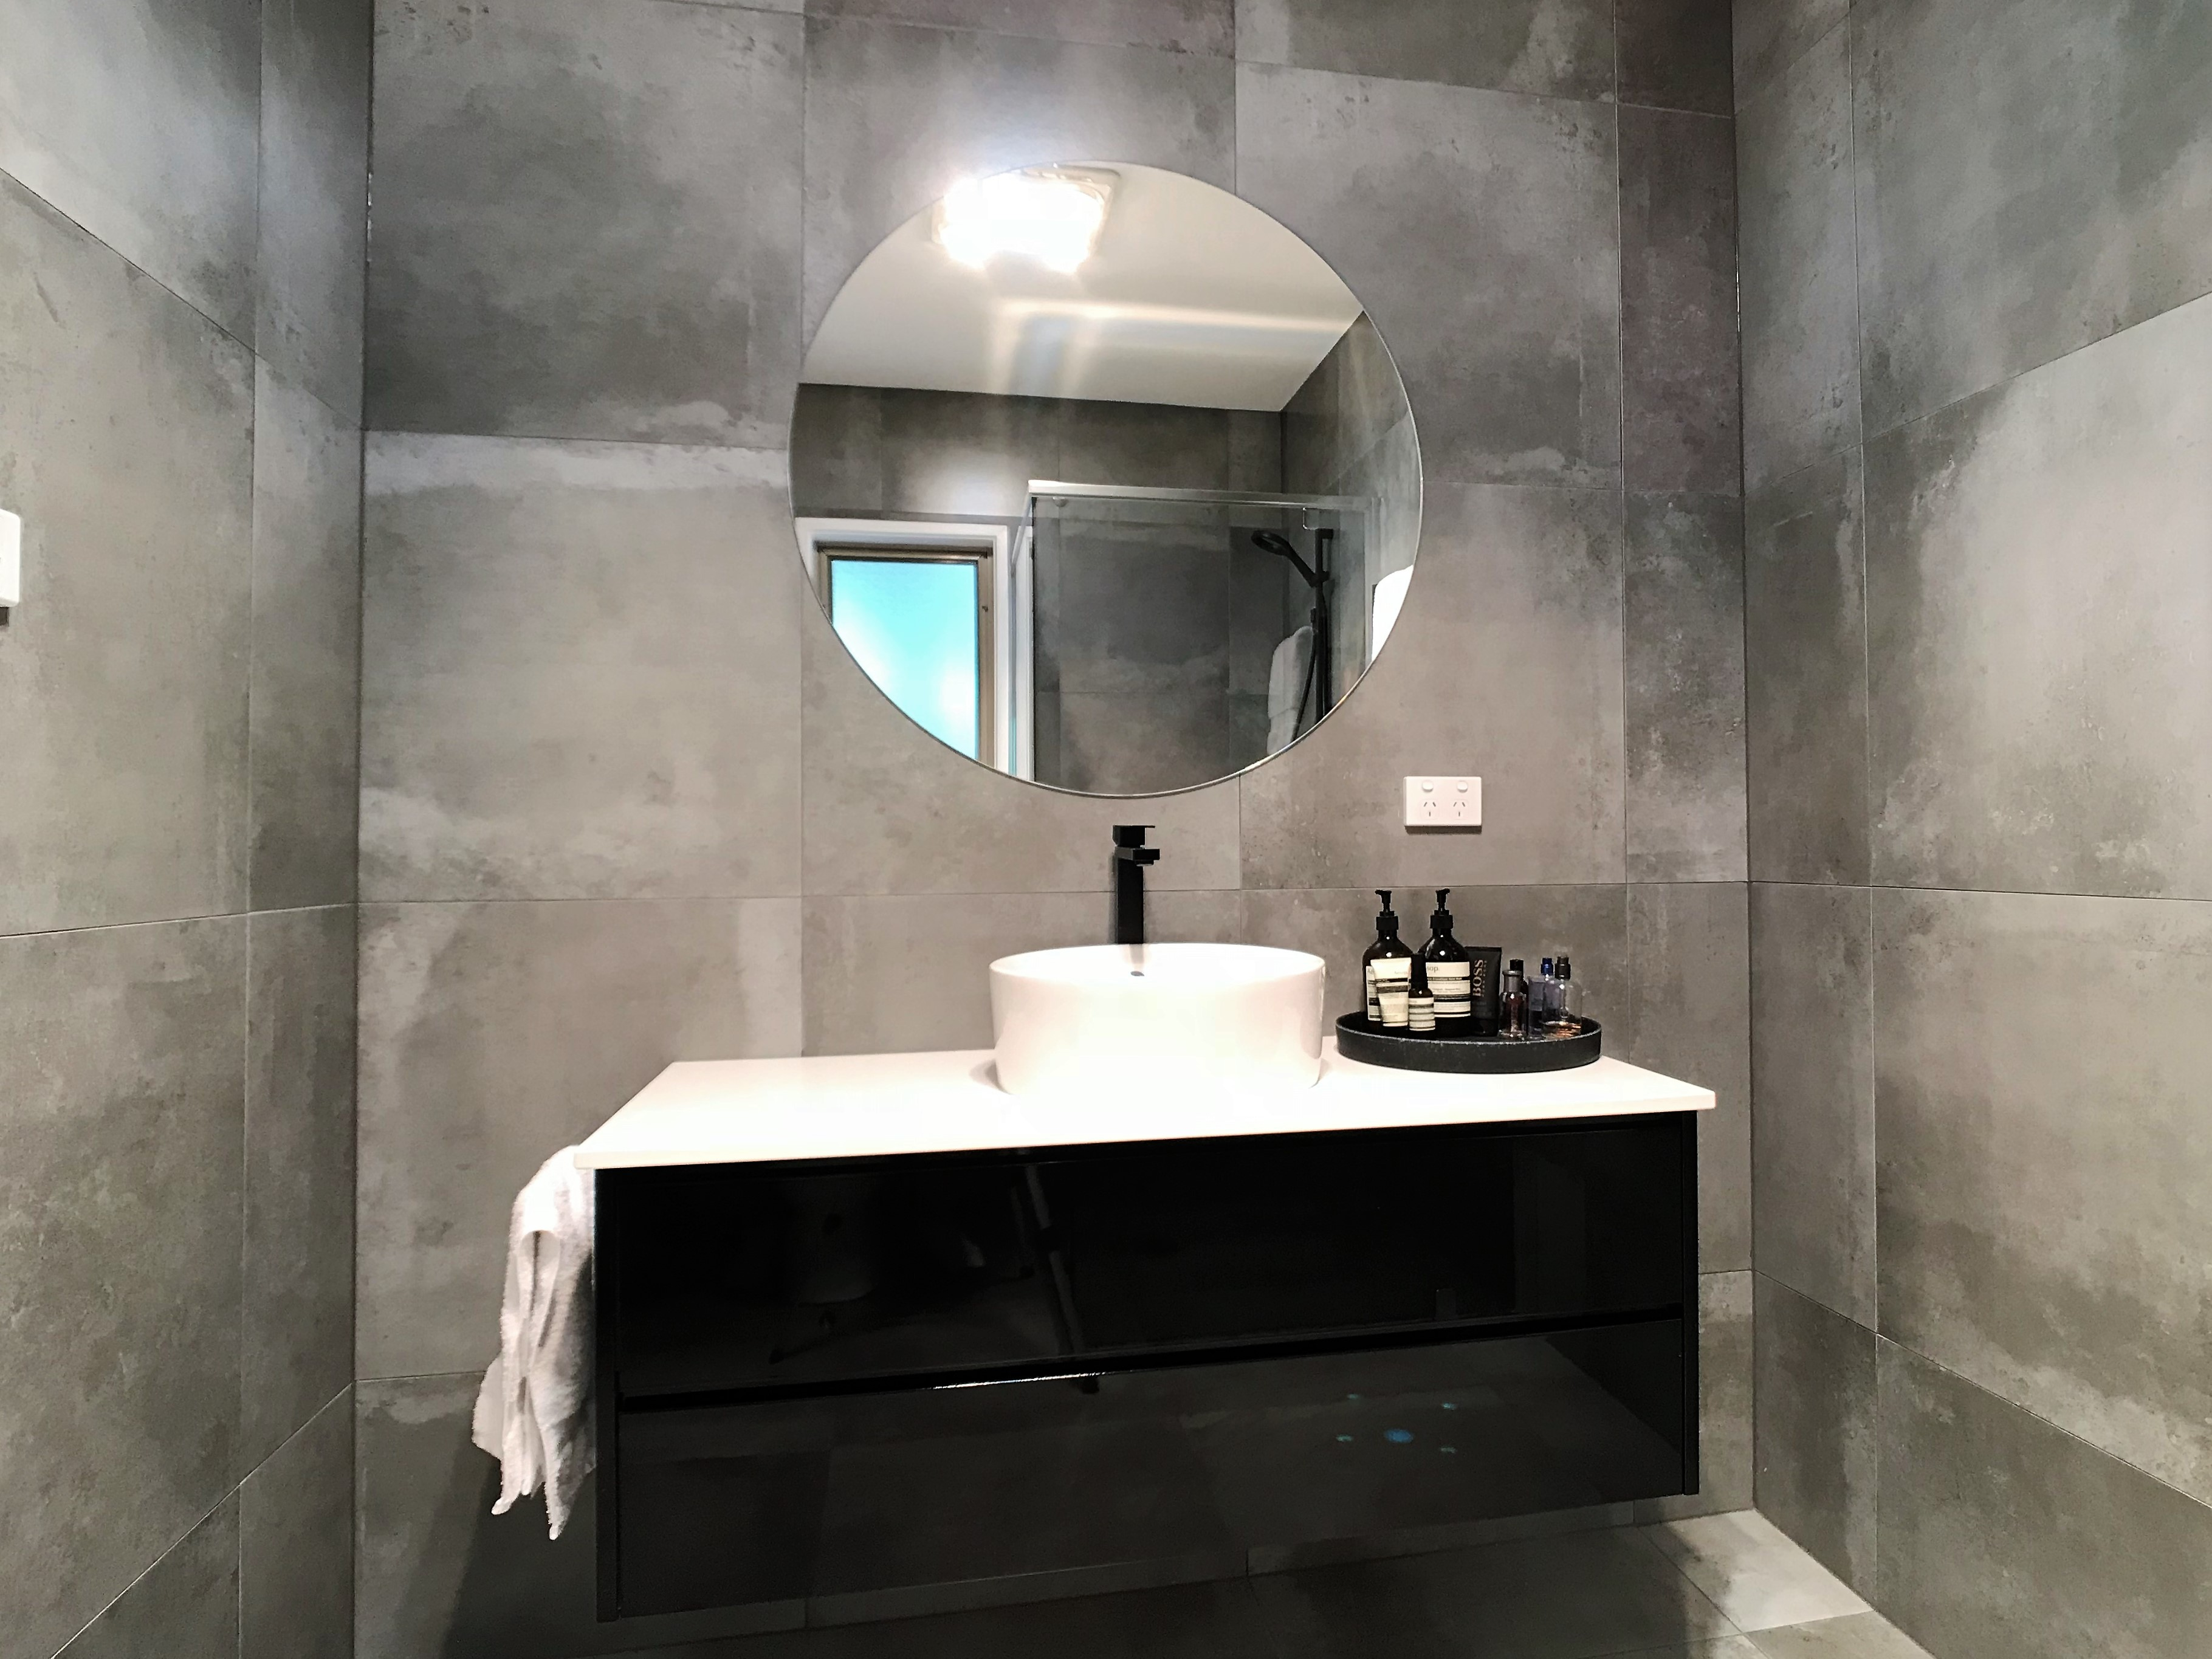 Stylish bathroom with round mirror and stylish amenities. - Bathroom Renovation